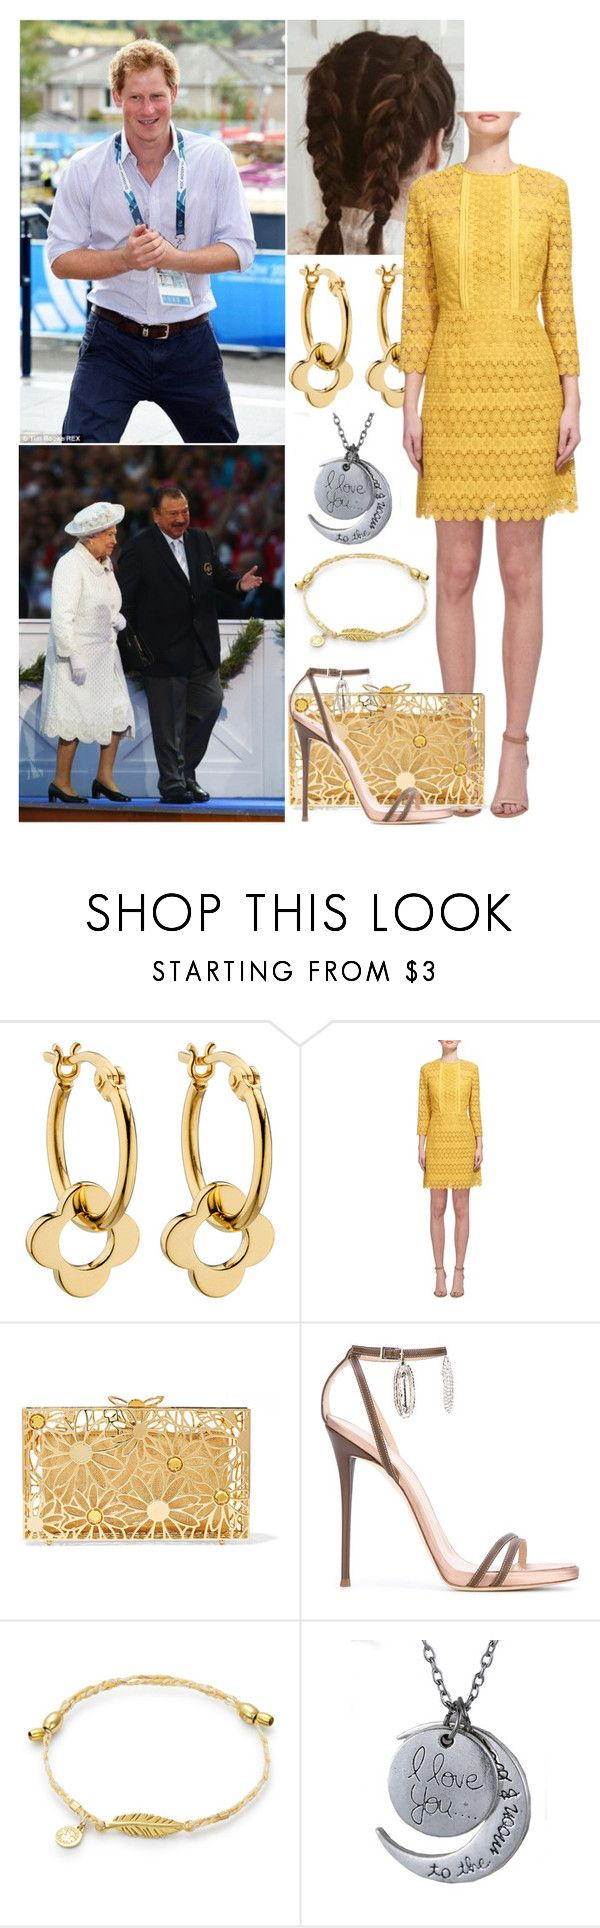 """""""Attending the Commonwealth Games Closing Ceremony"""" by alicewindsor ❤ liked on Polyvore featuring Orla Kiely, Whistles, Charlotte Olympia and Giuseppe Zanotti"""